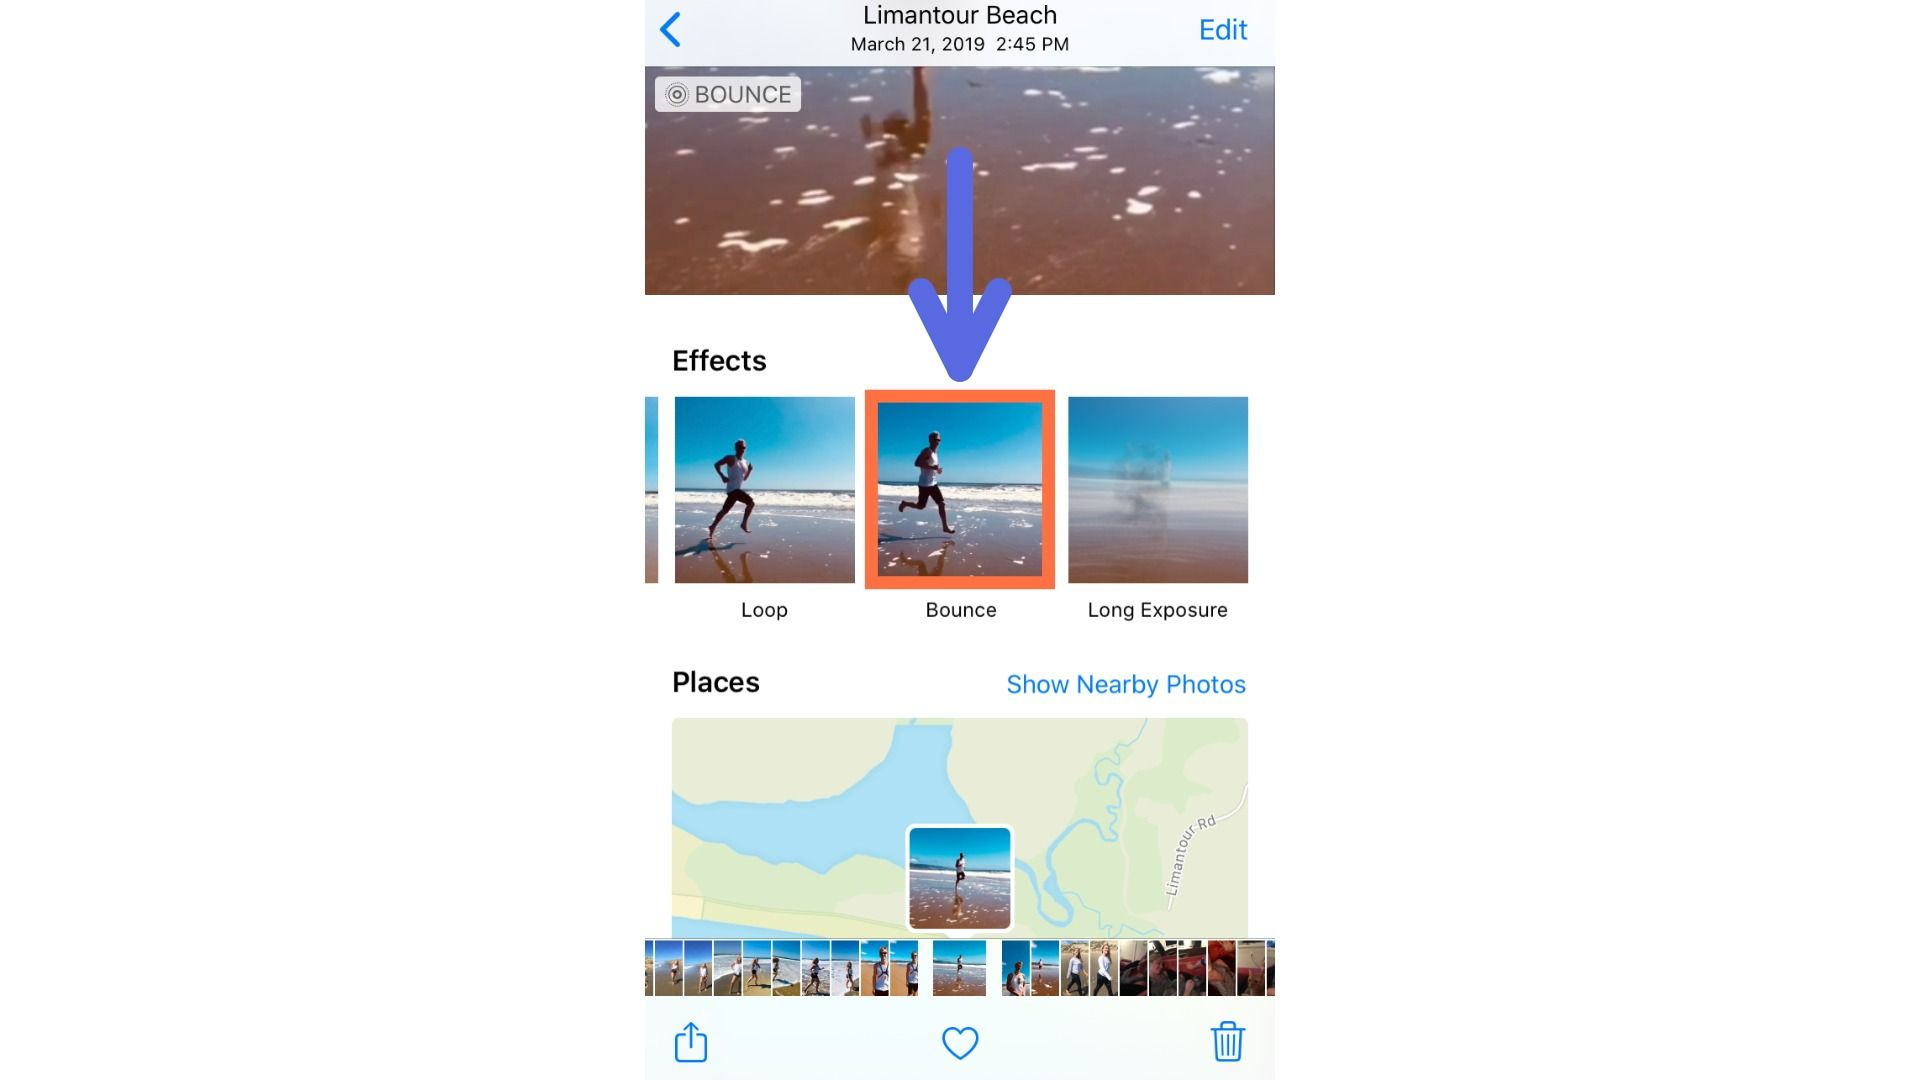 A screenshot showing the Live Photo Bounce and Loop options on iPhone.